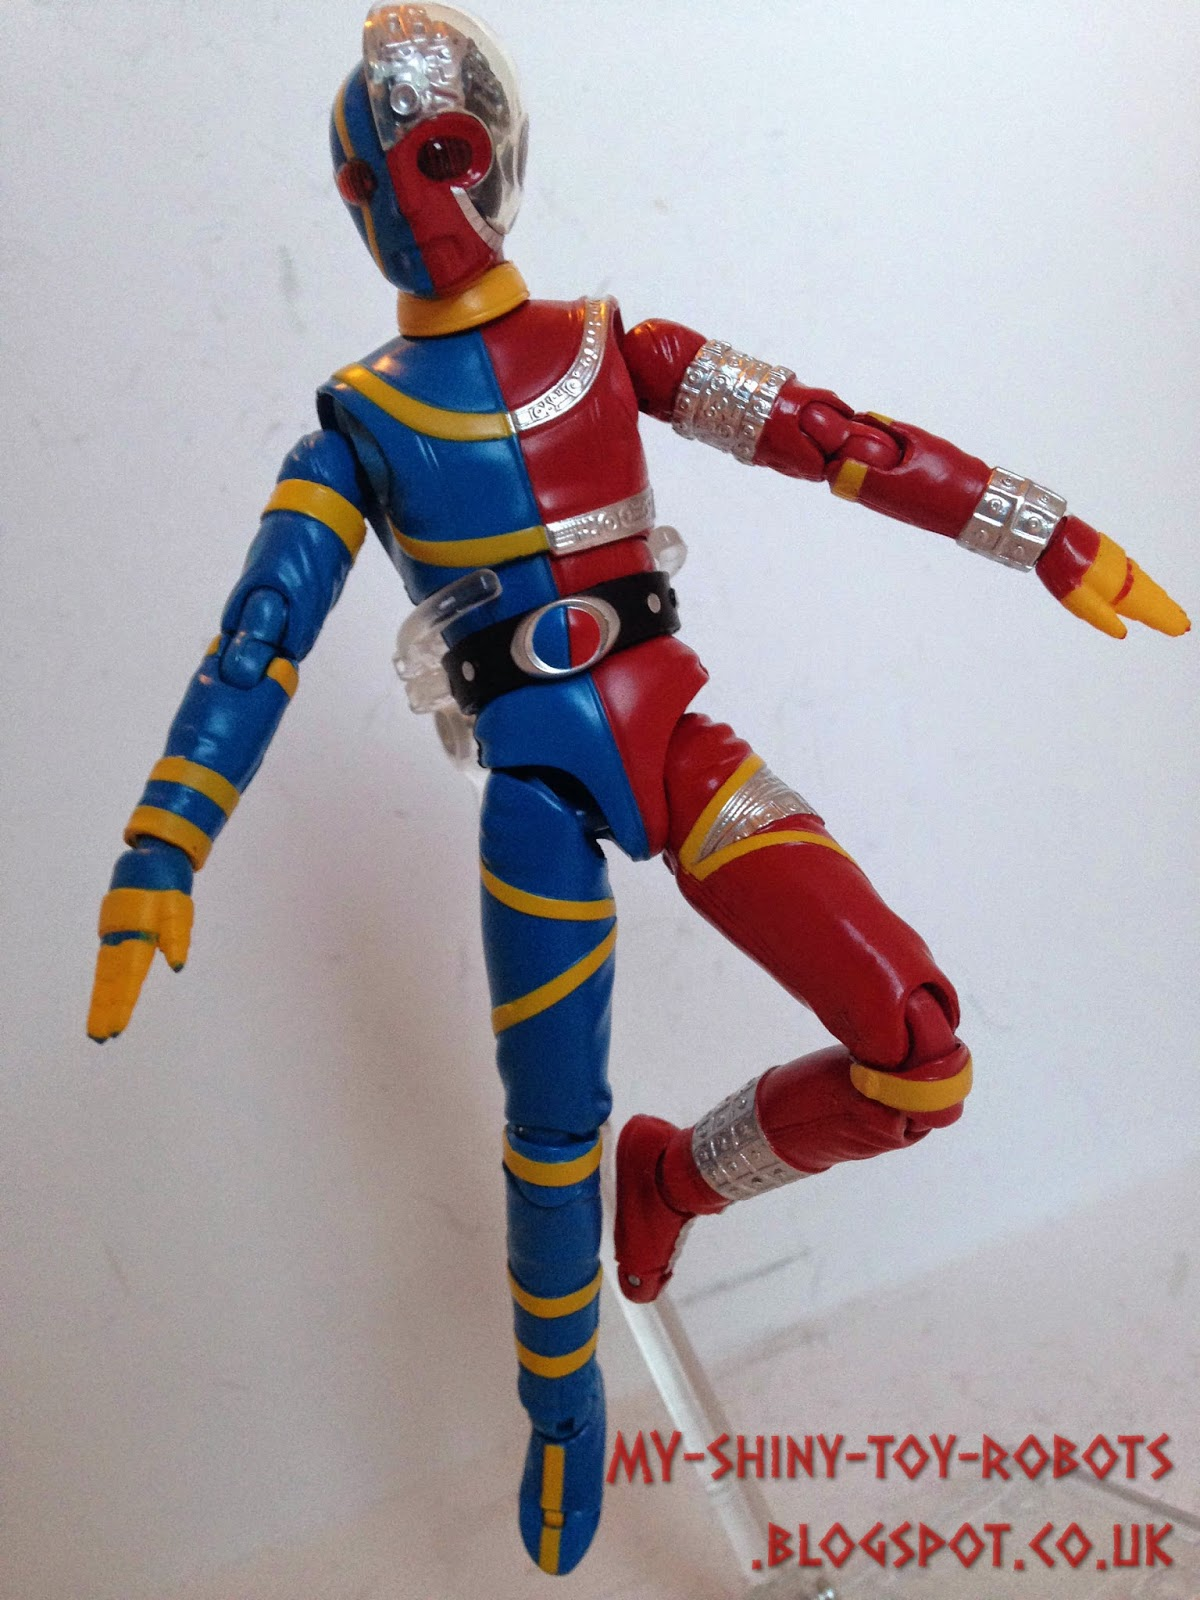 Kikaider strikes a pose